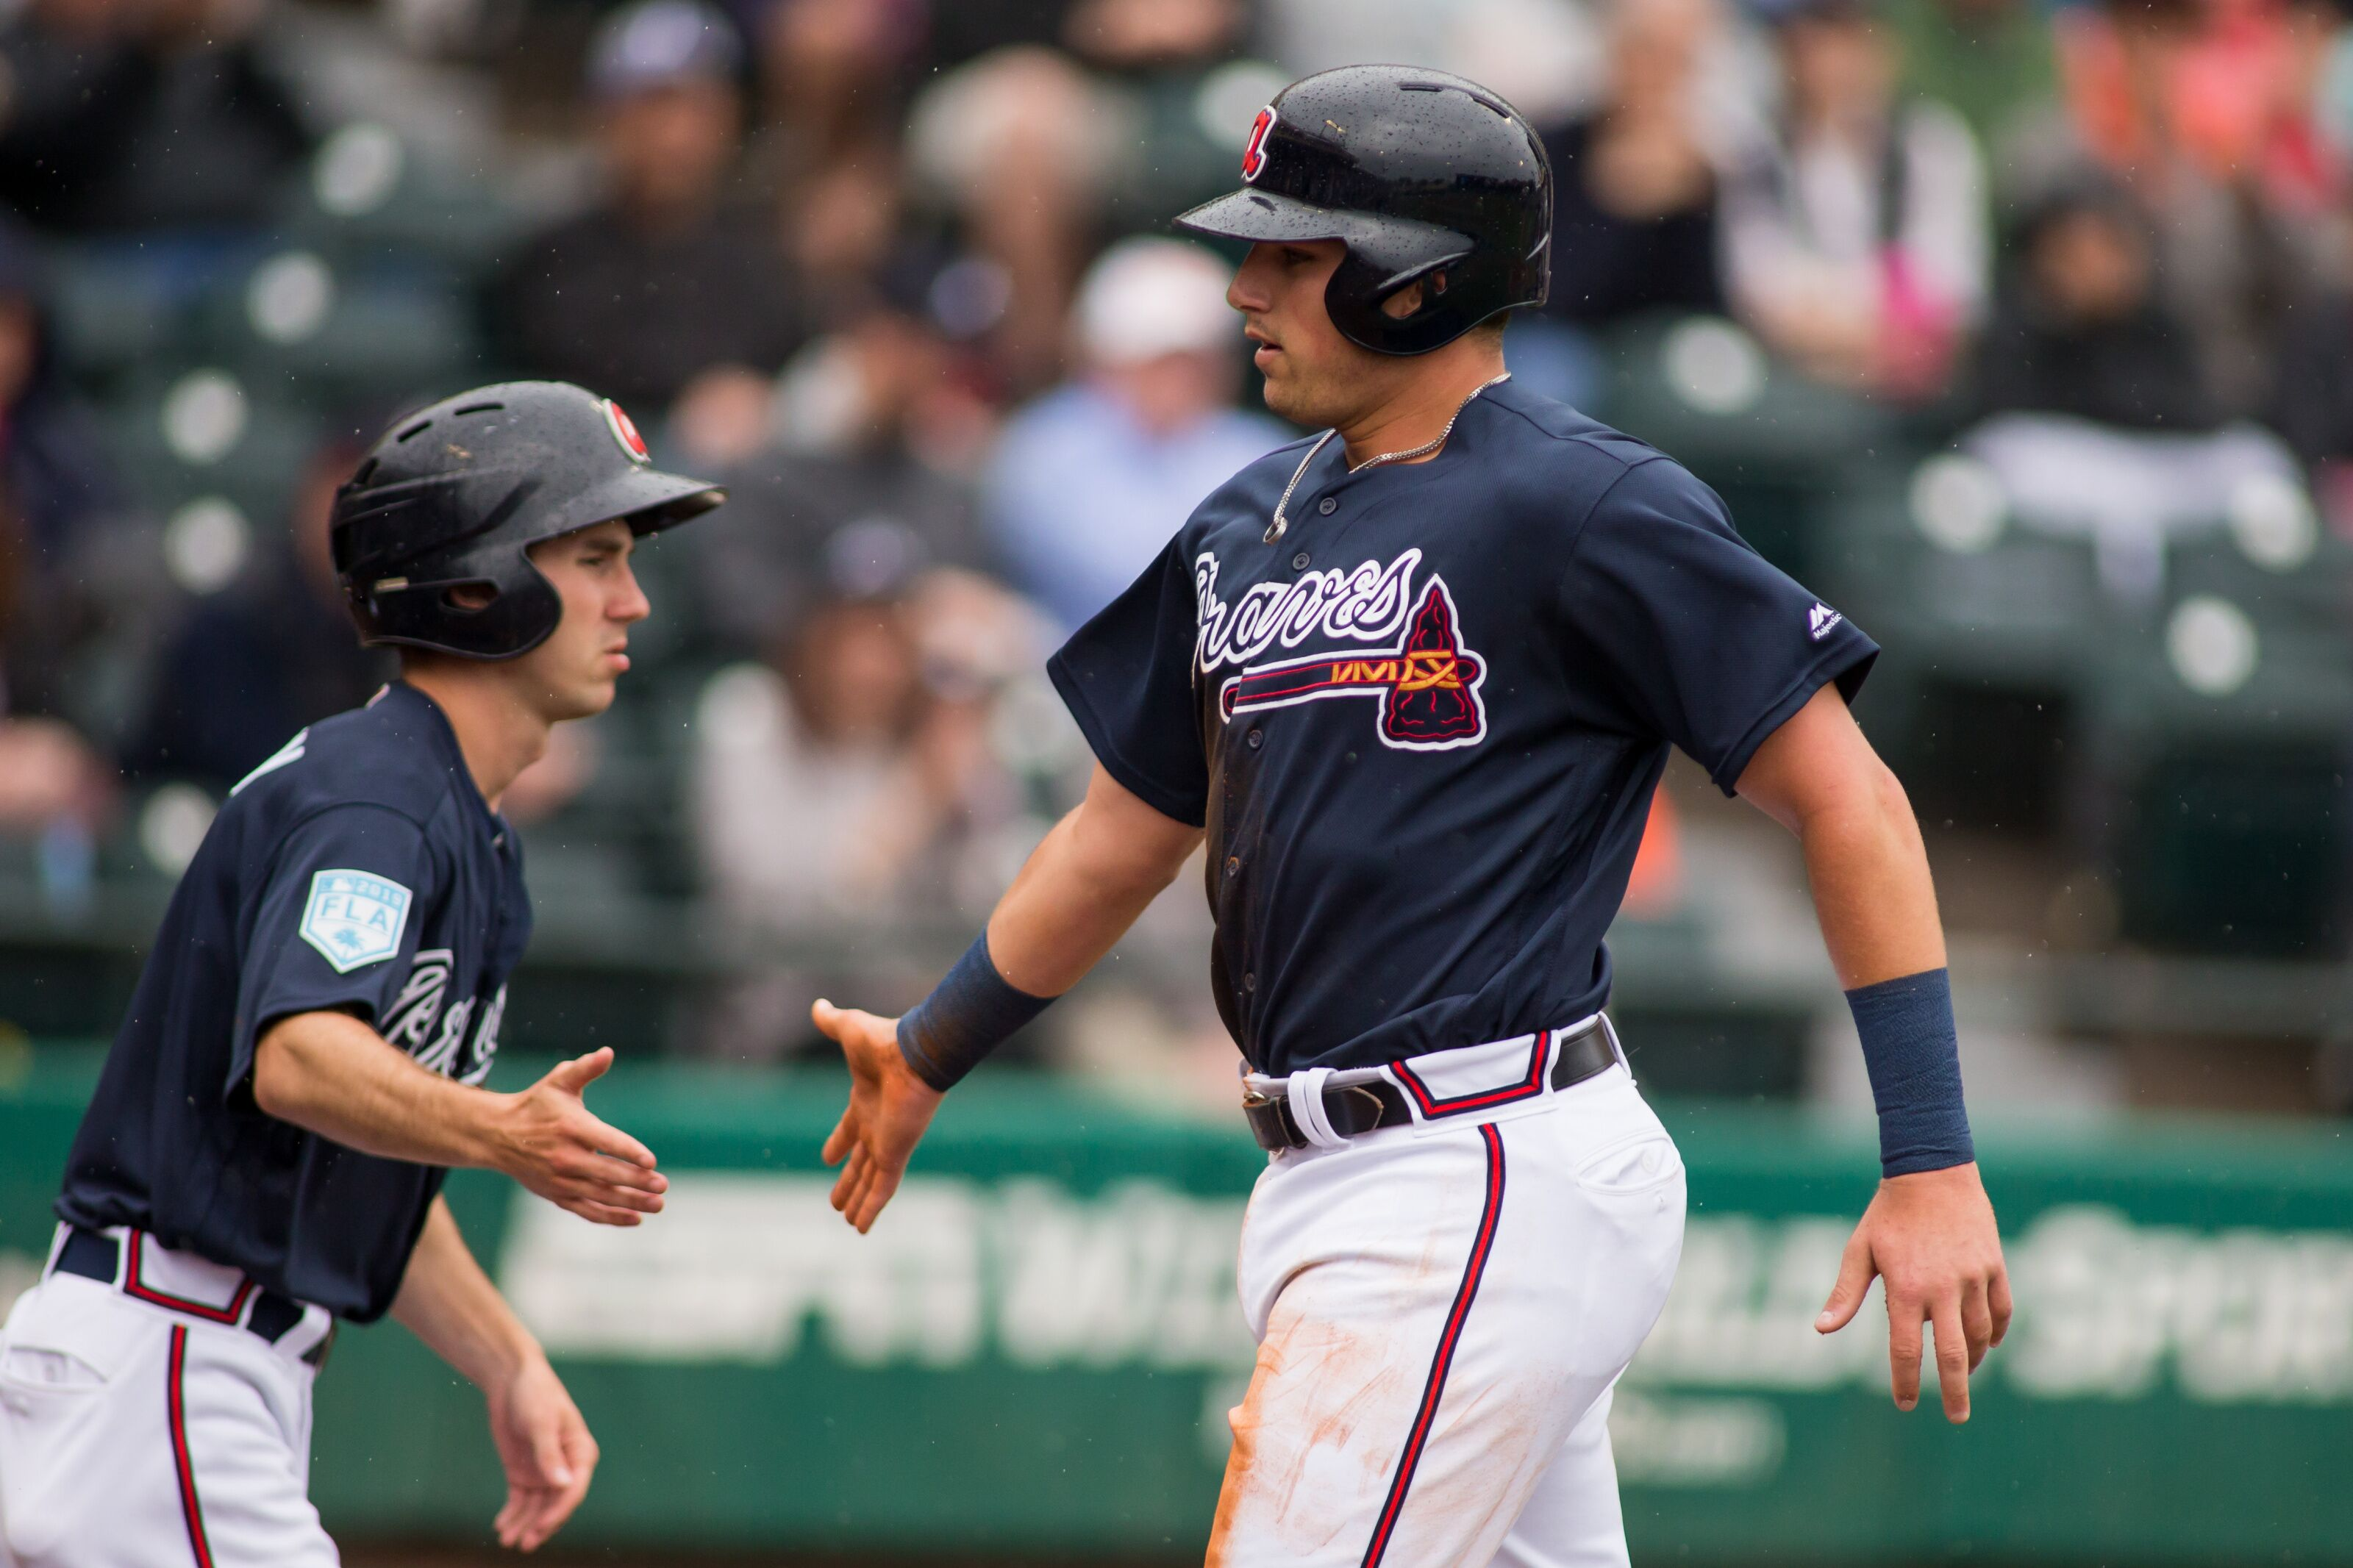 LAKE BUENA VISTA, FL - MARCH 19: Atlanta Braves third baseman Austin Riley (74) celebrates after scoring in the third inning of a Major League Baseball spring training game between the Washington Nationals and the Atlanta Braves at Champion Stadium in Lake Buena Vista, FL on March 19. (Photo by Mary Holt/Icon Sportswire via Getty Images)